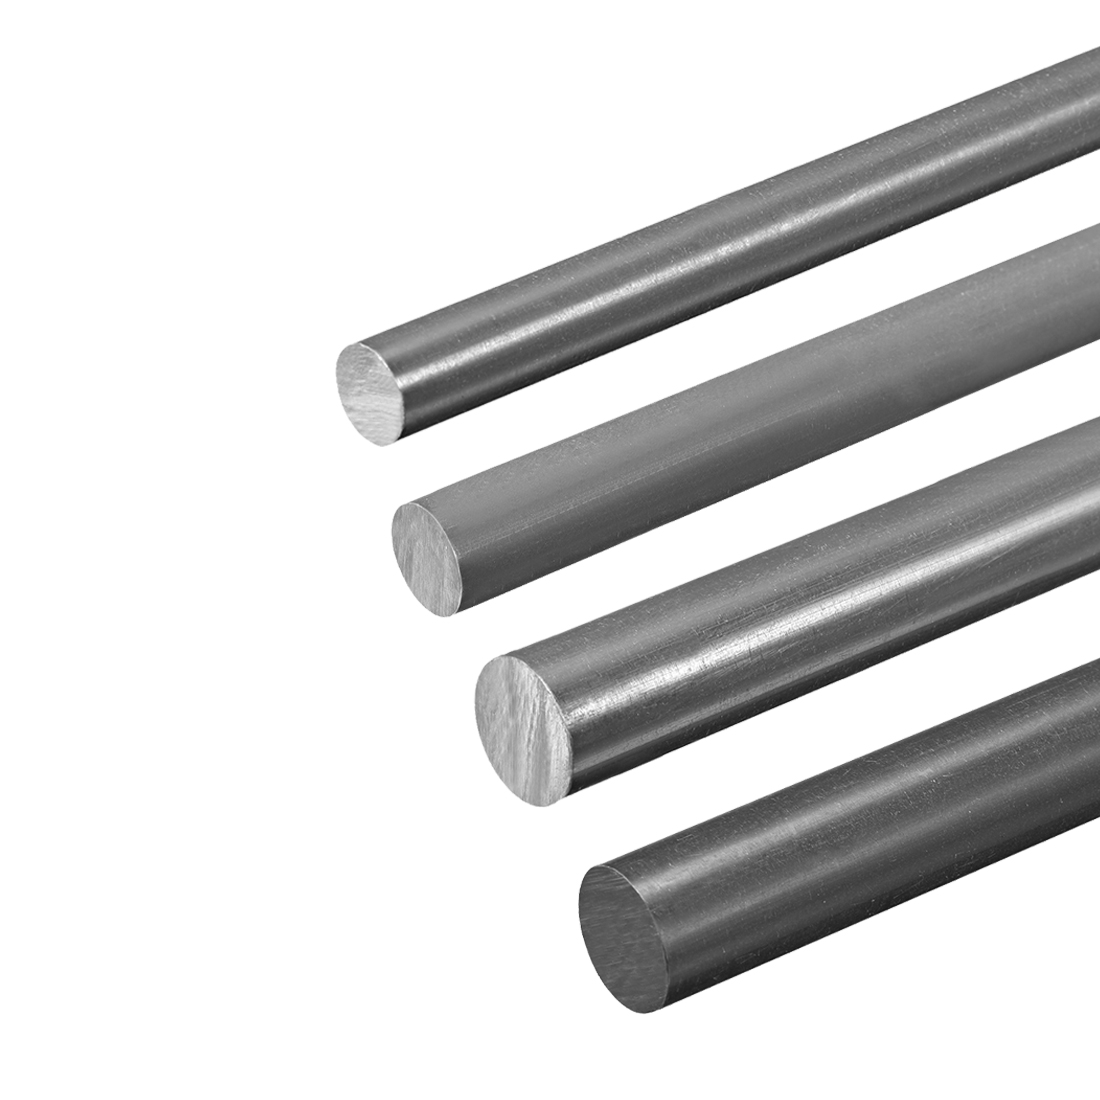 Uxcell PVC Round Rods 20